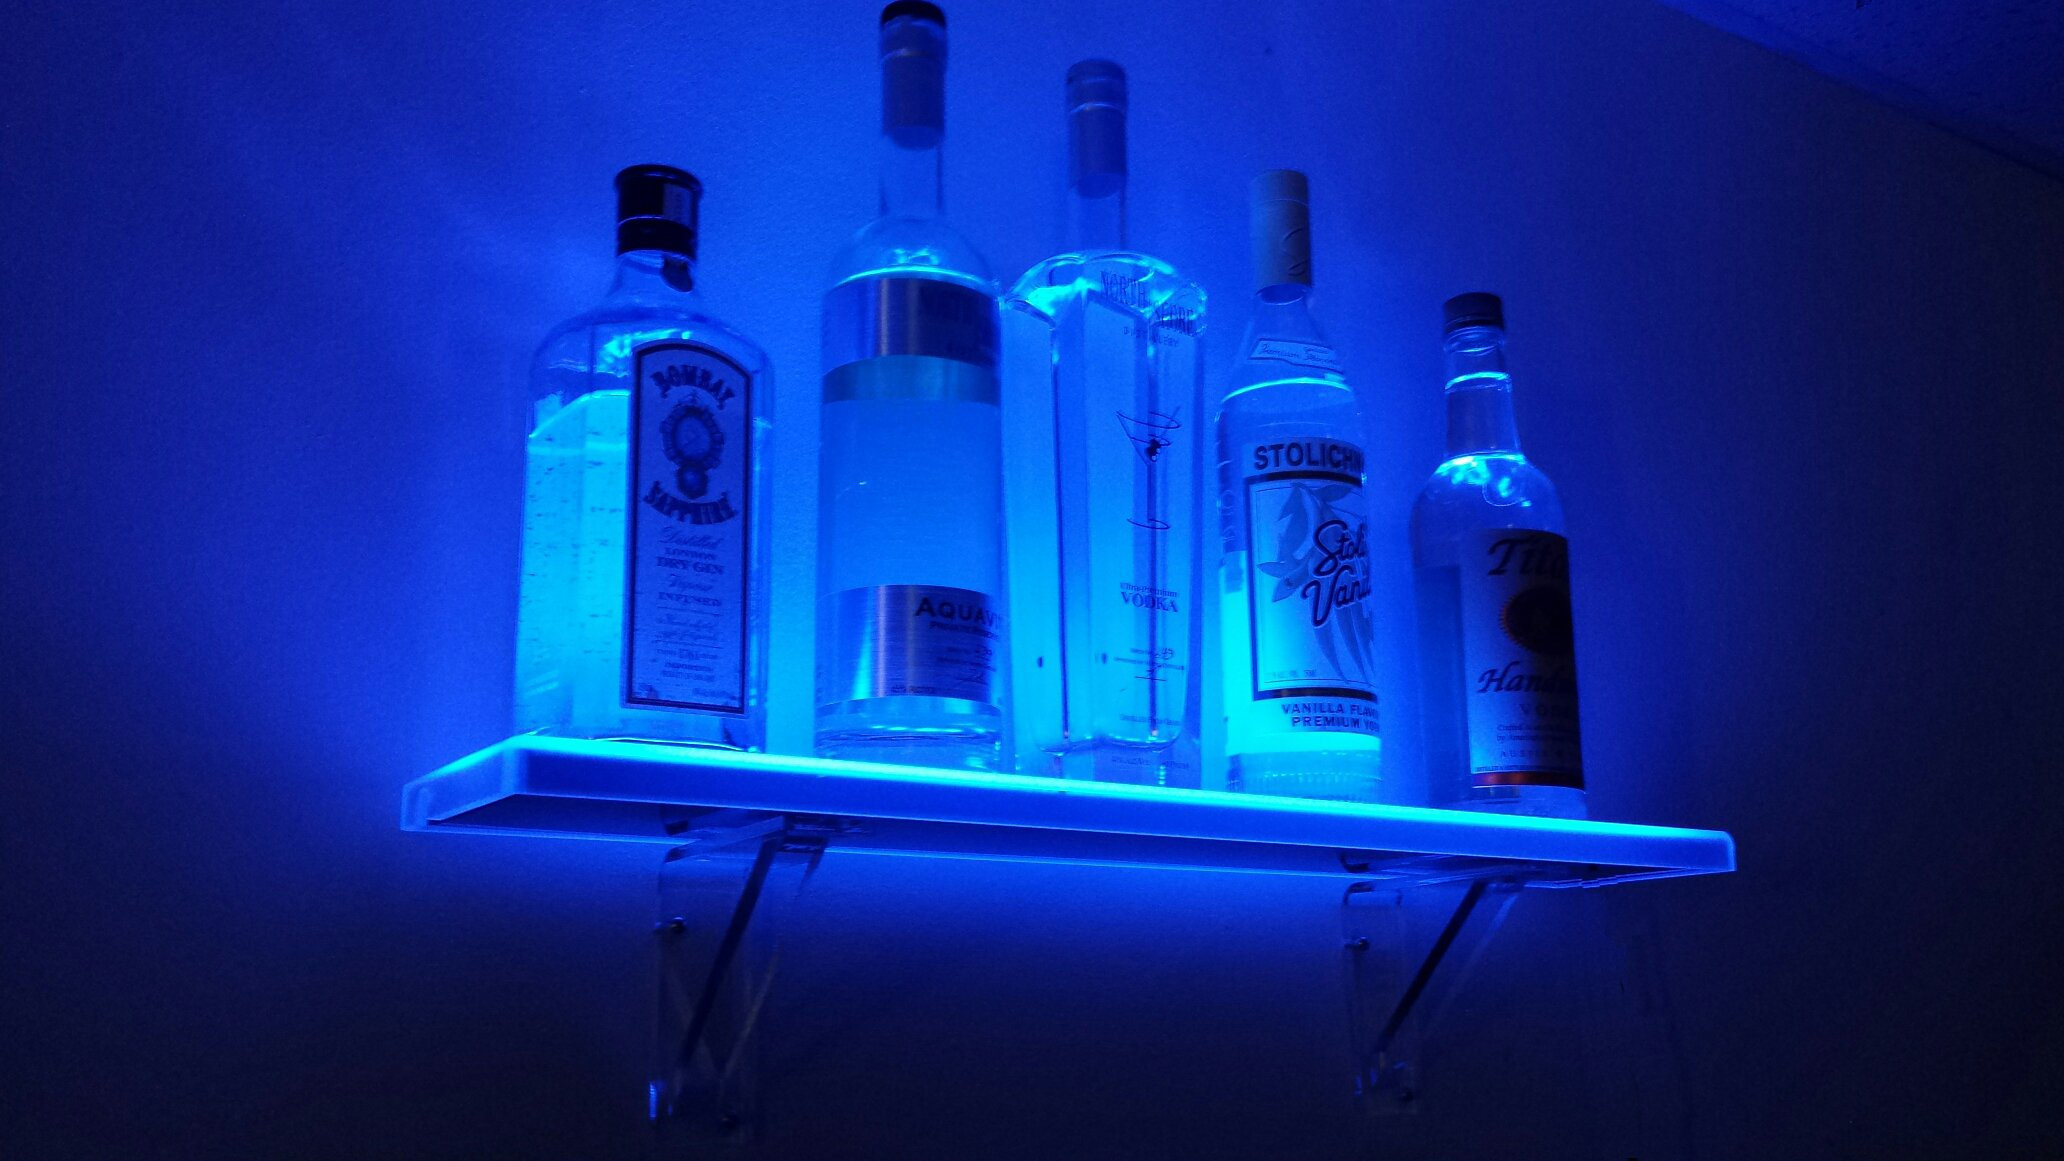 4 Foot Wall Mount LED Liquor Shelf - Made in the USA - Includes Wireless Remote Control, Wall brackets and hardware, and UL Listed Power Supply (48'' L x 4.5'' Deep x .75'' Thick) by Armana Productions